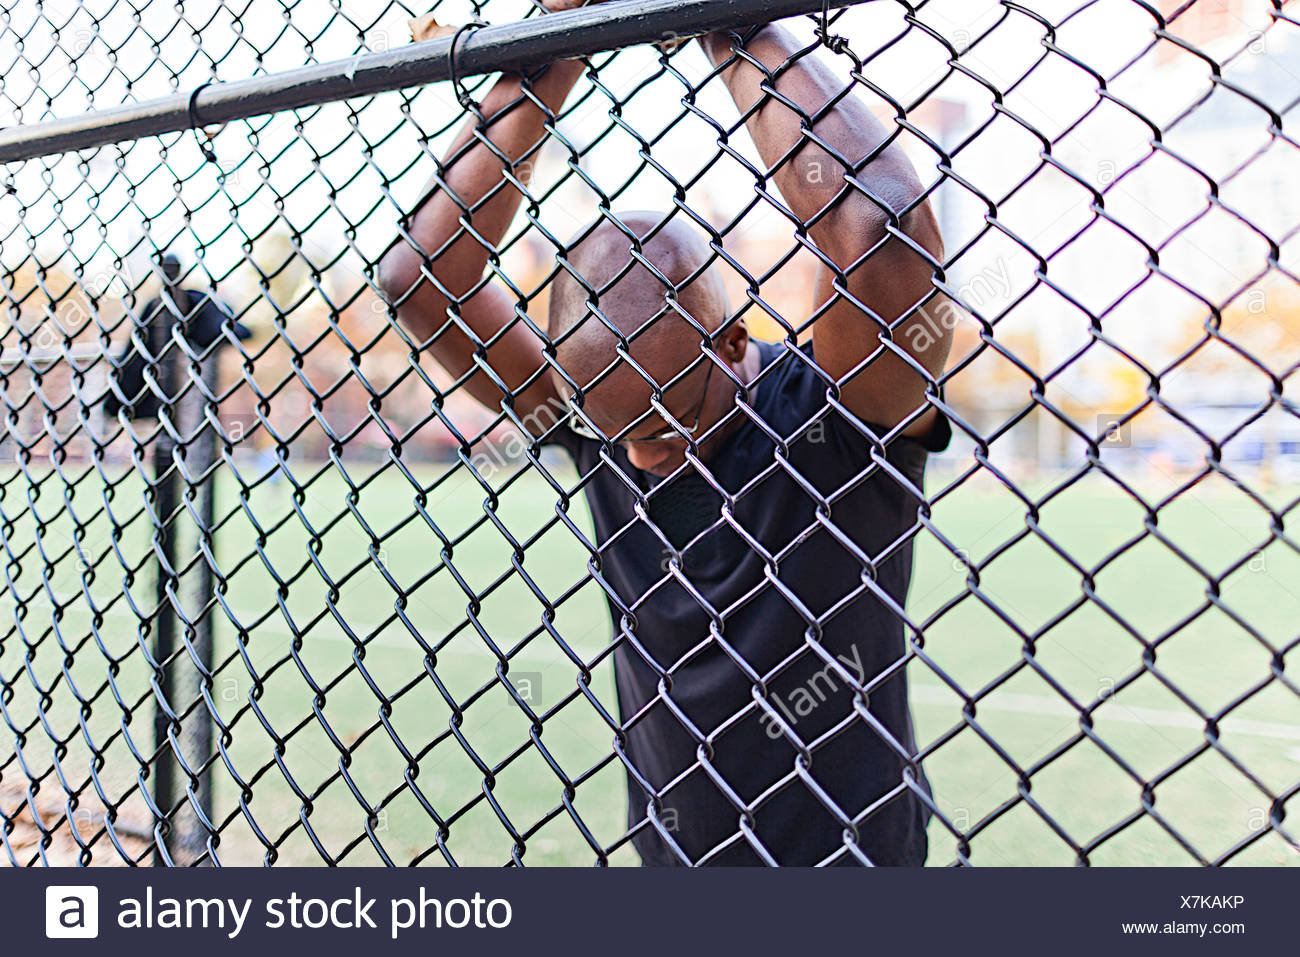 Man behind a chain link fence - Stock Image